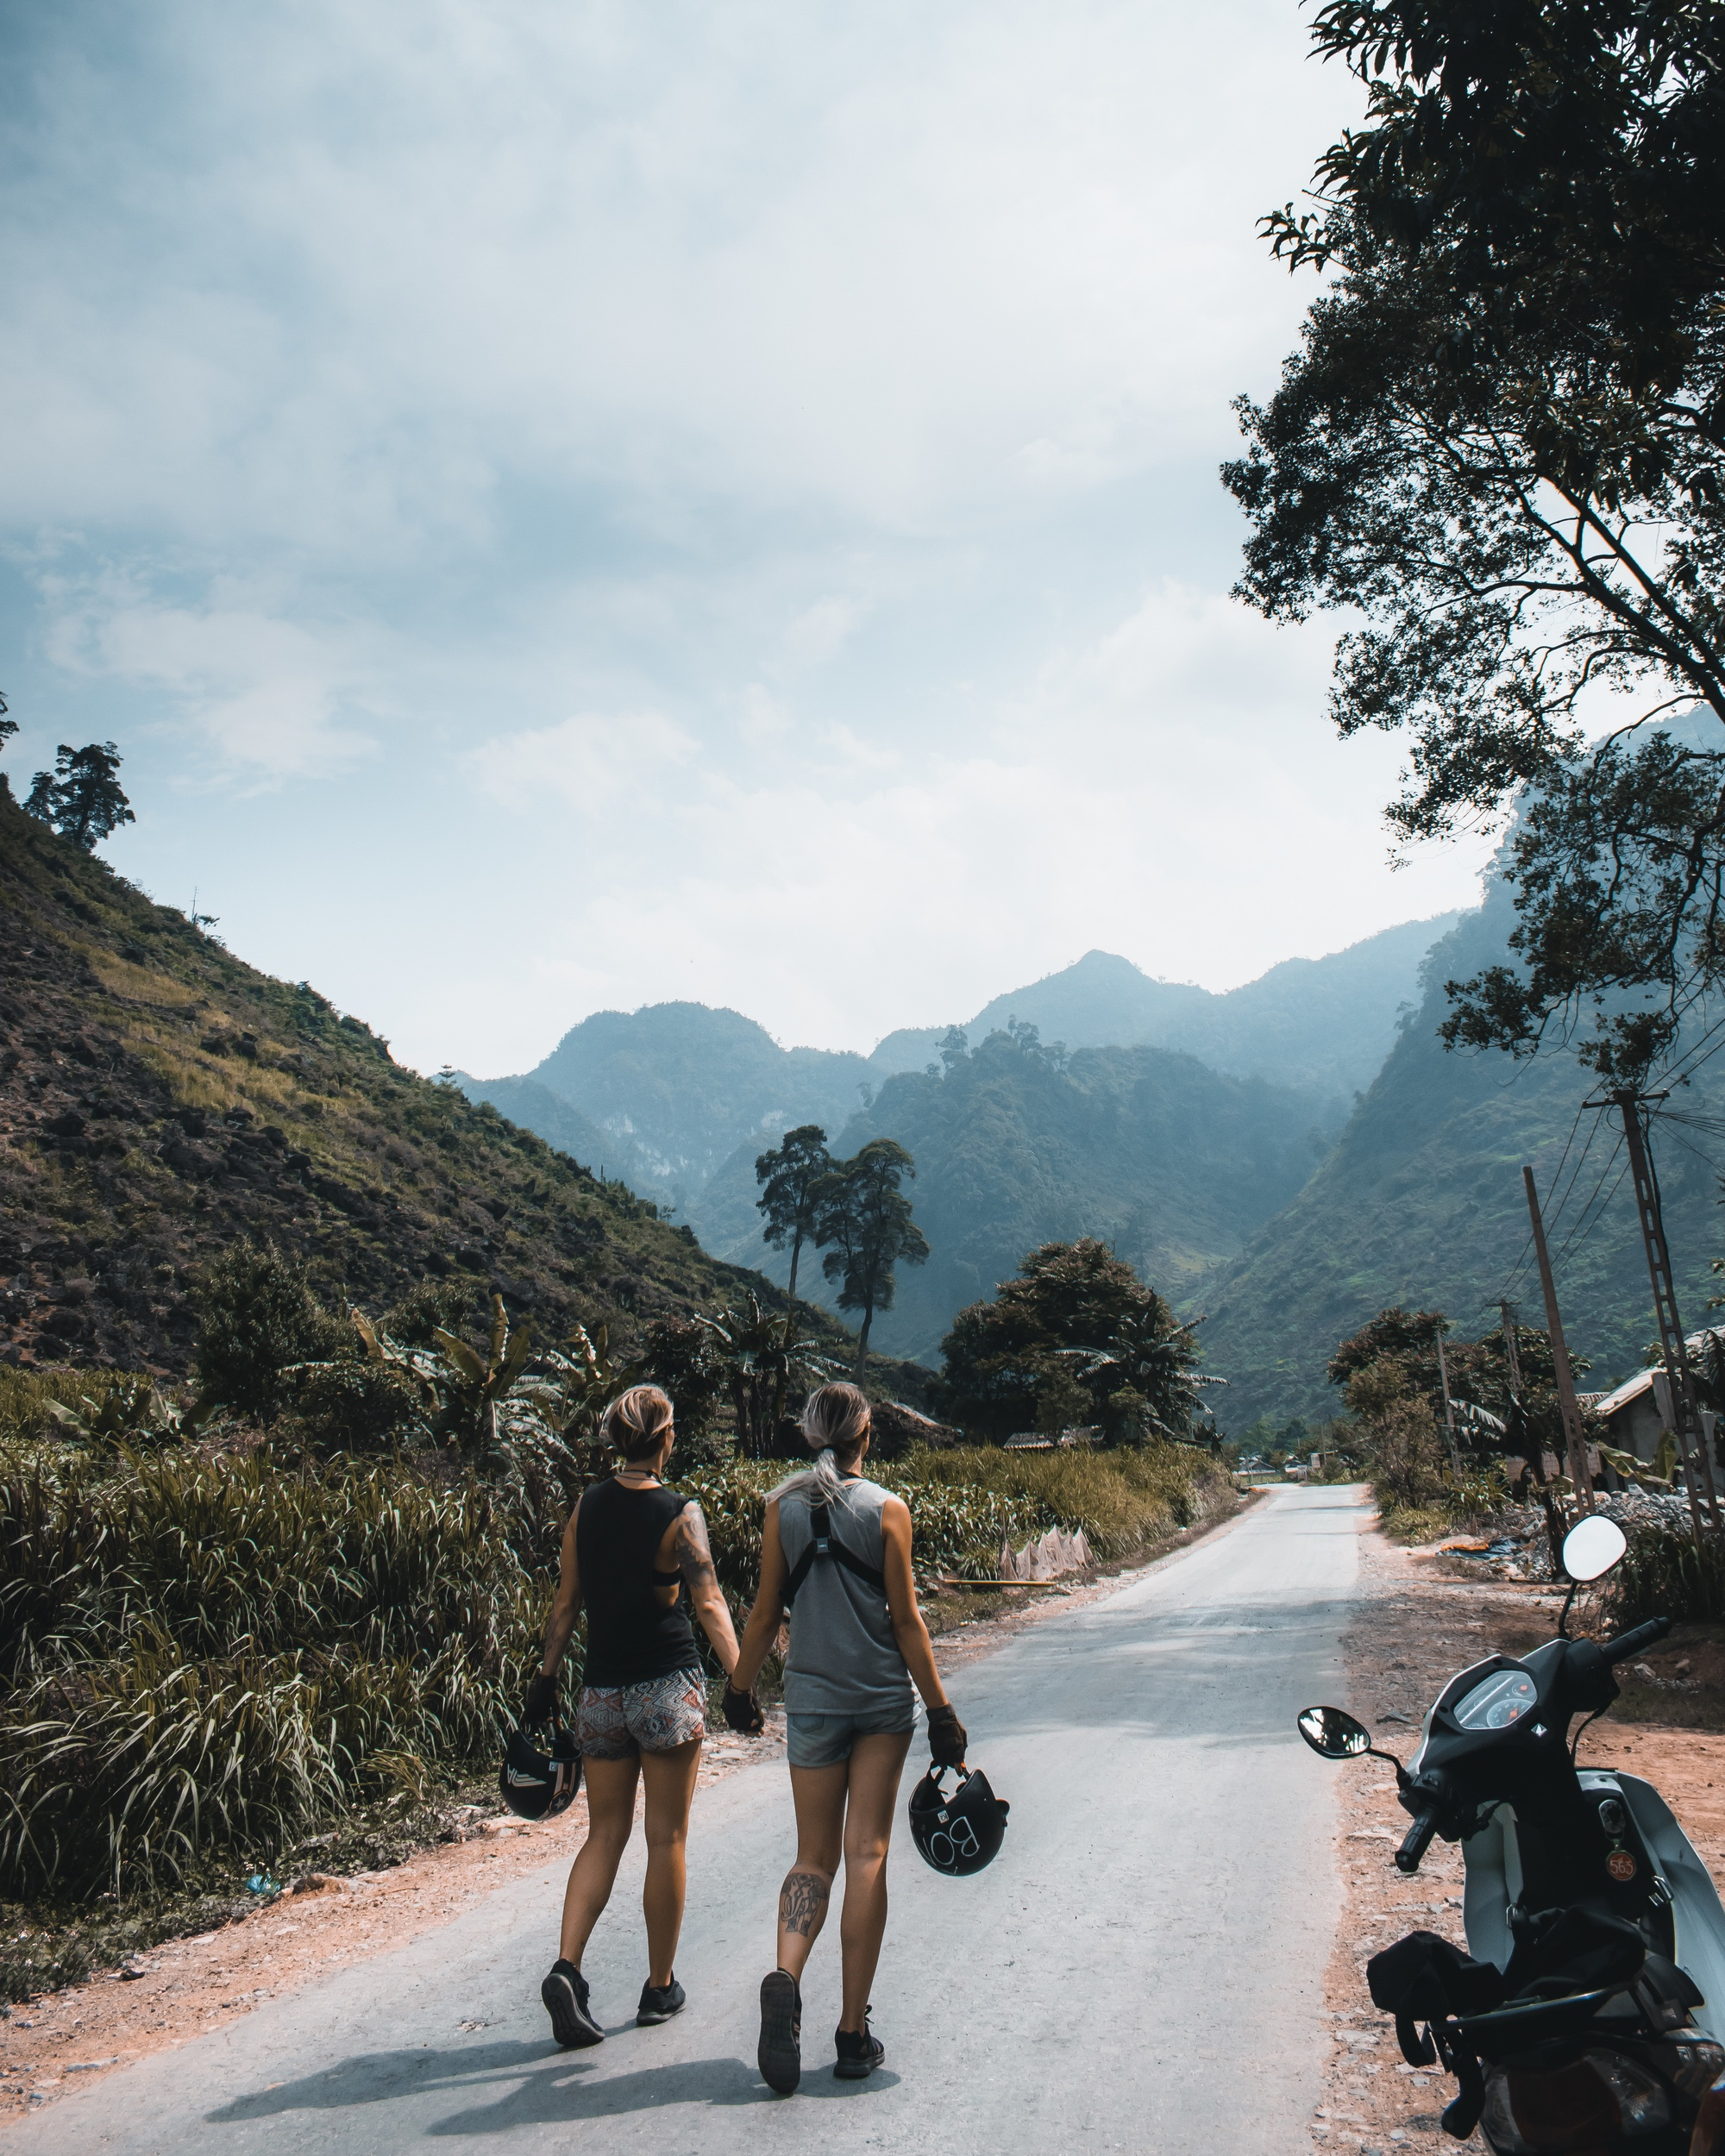 Walking along the Ha Giang loop road